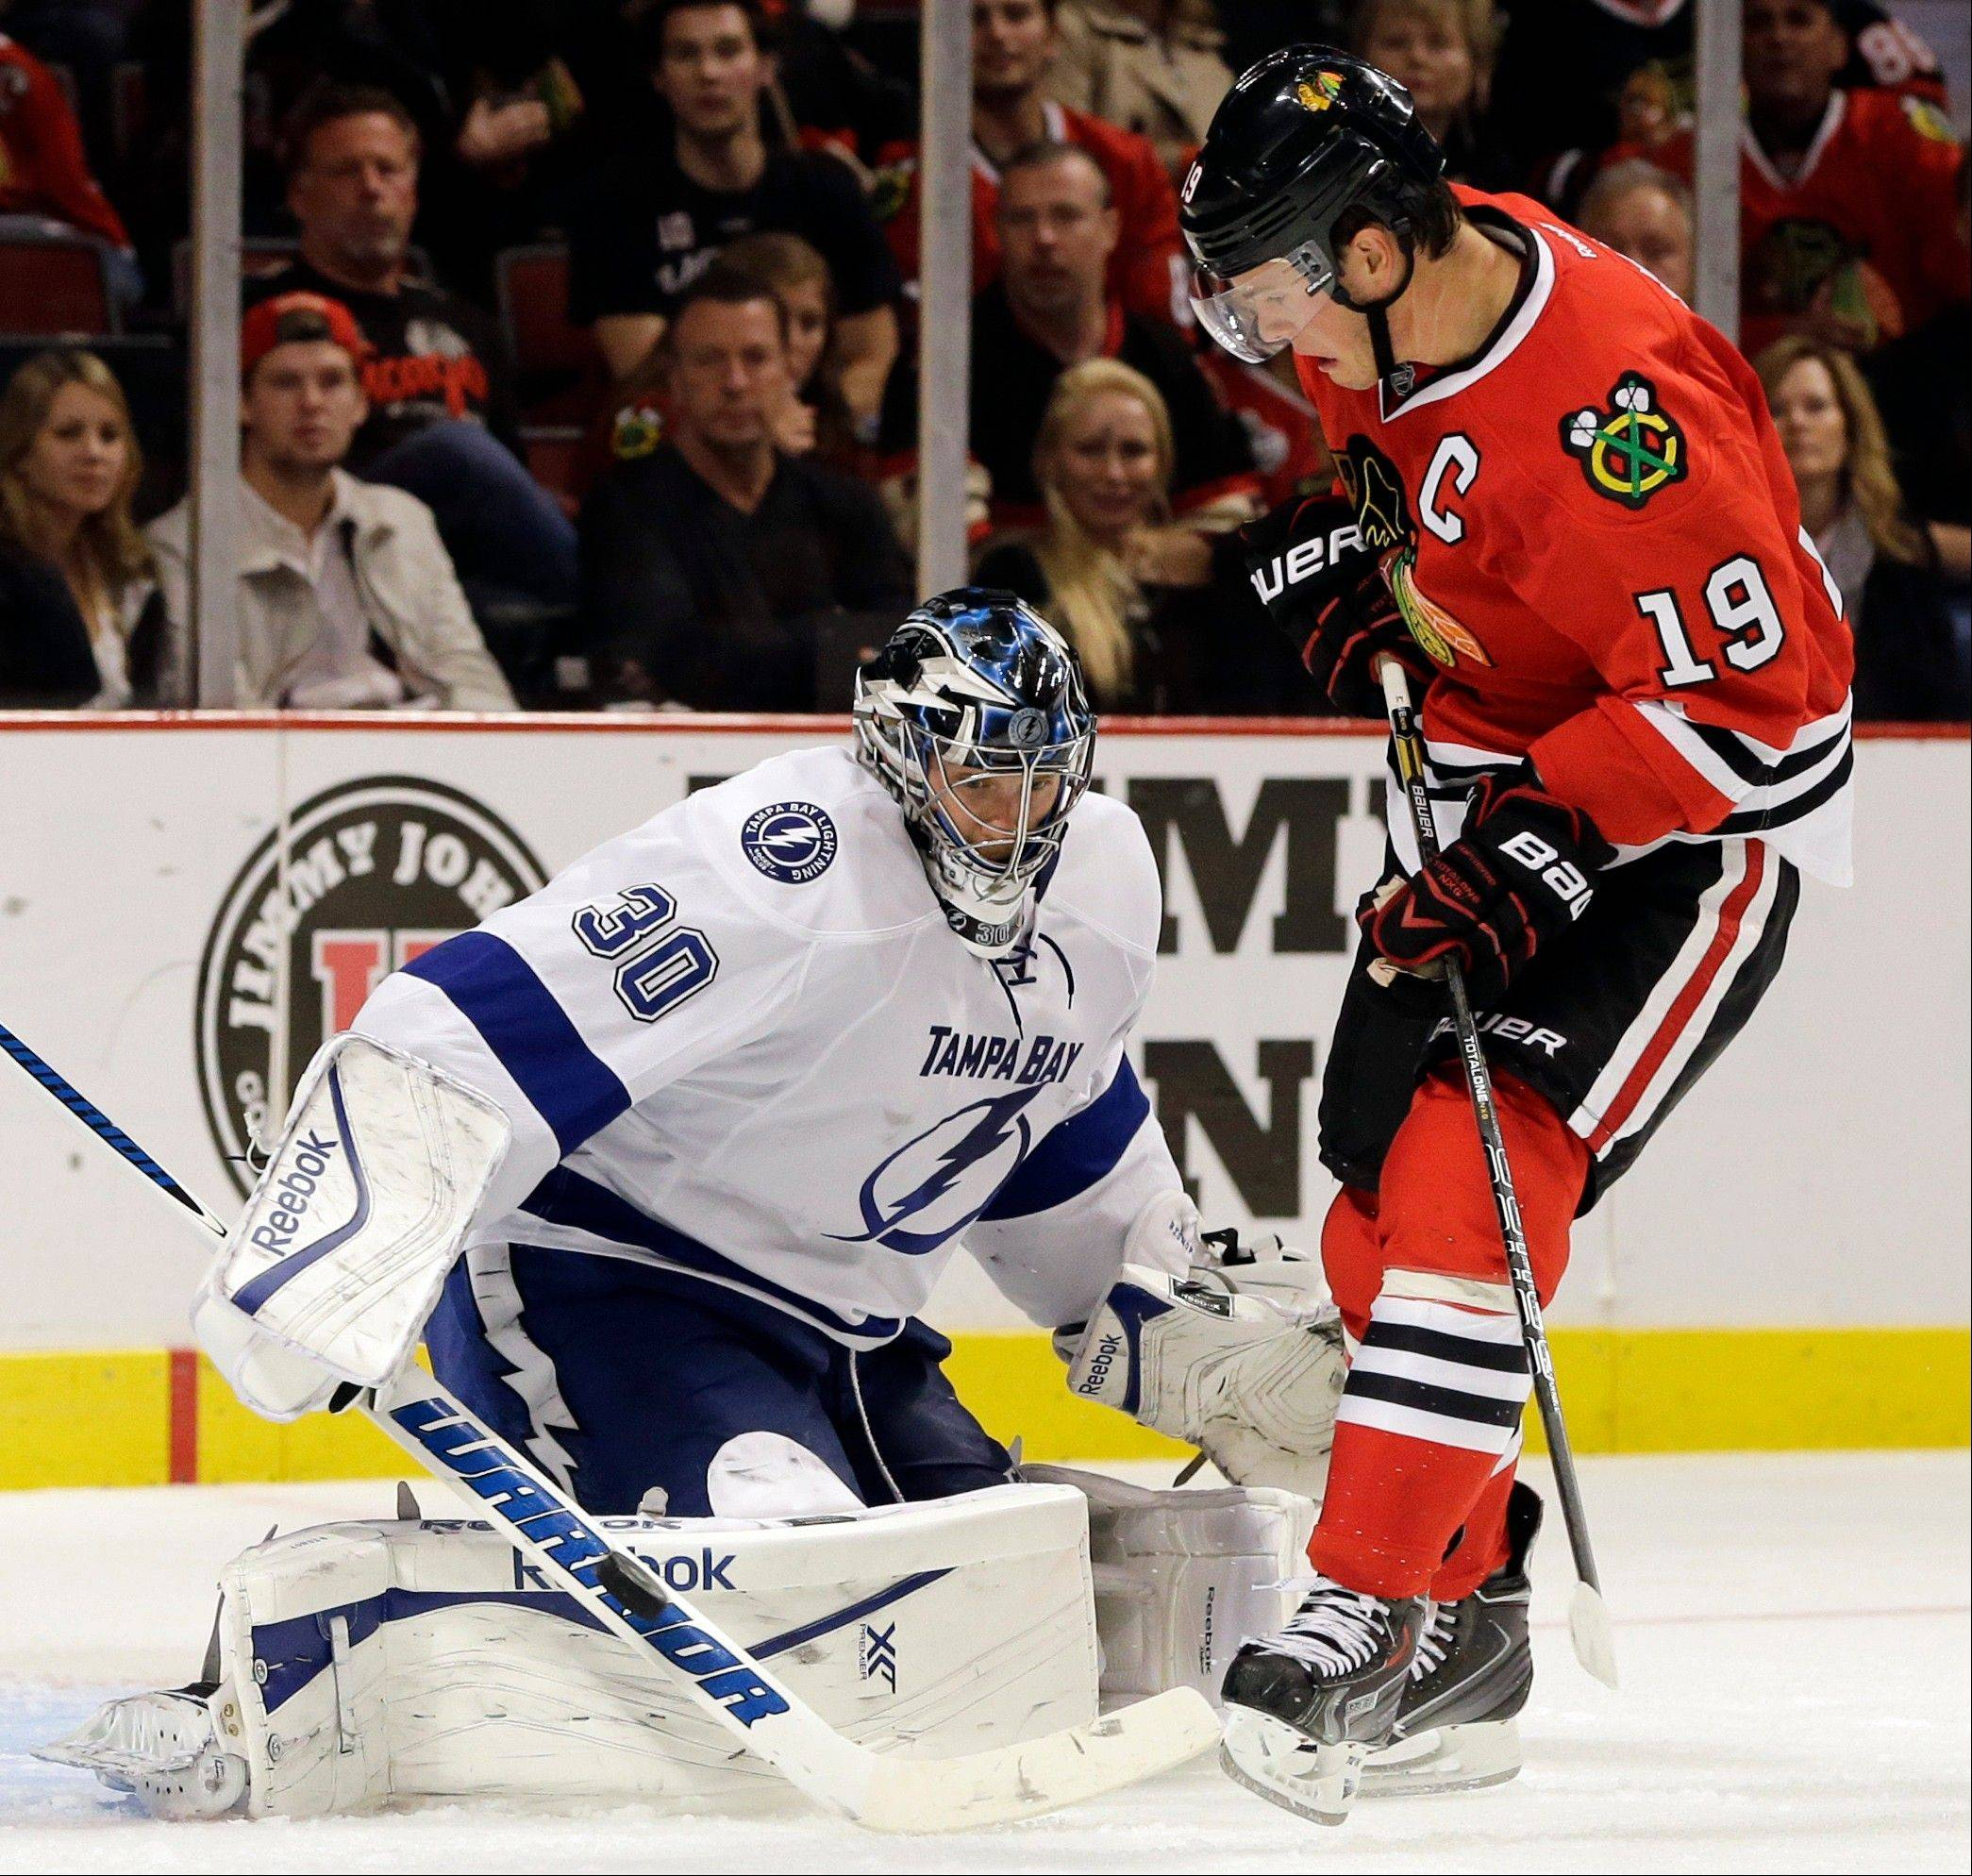 Lightning goalie Ben Bishop blocks a shot by the Blackhawks� Jonathan Toews during the second period Saturday night at the United Center.